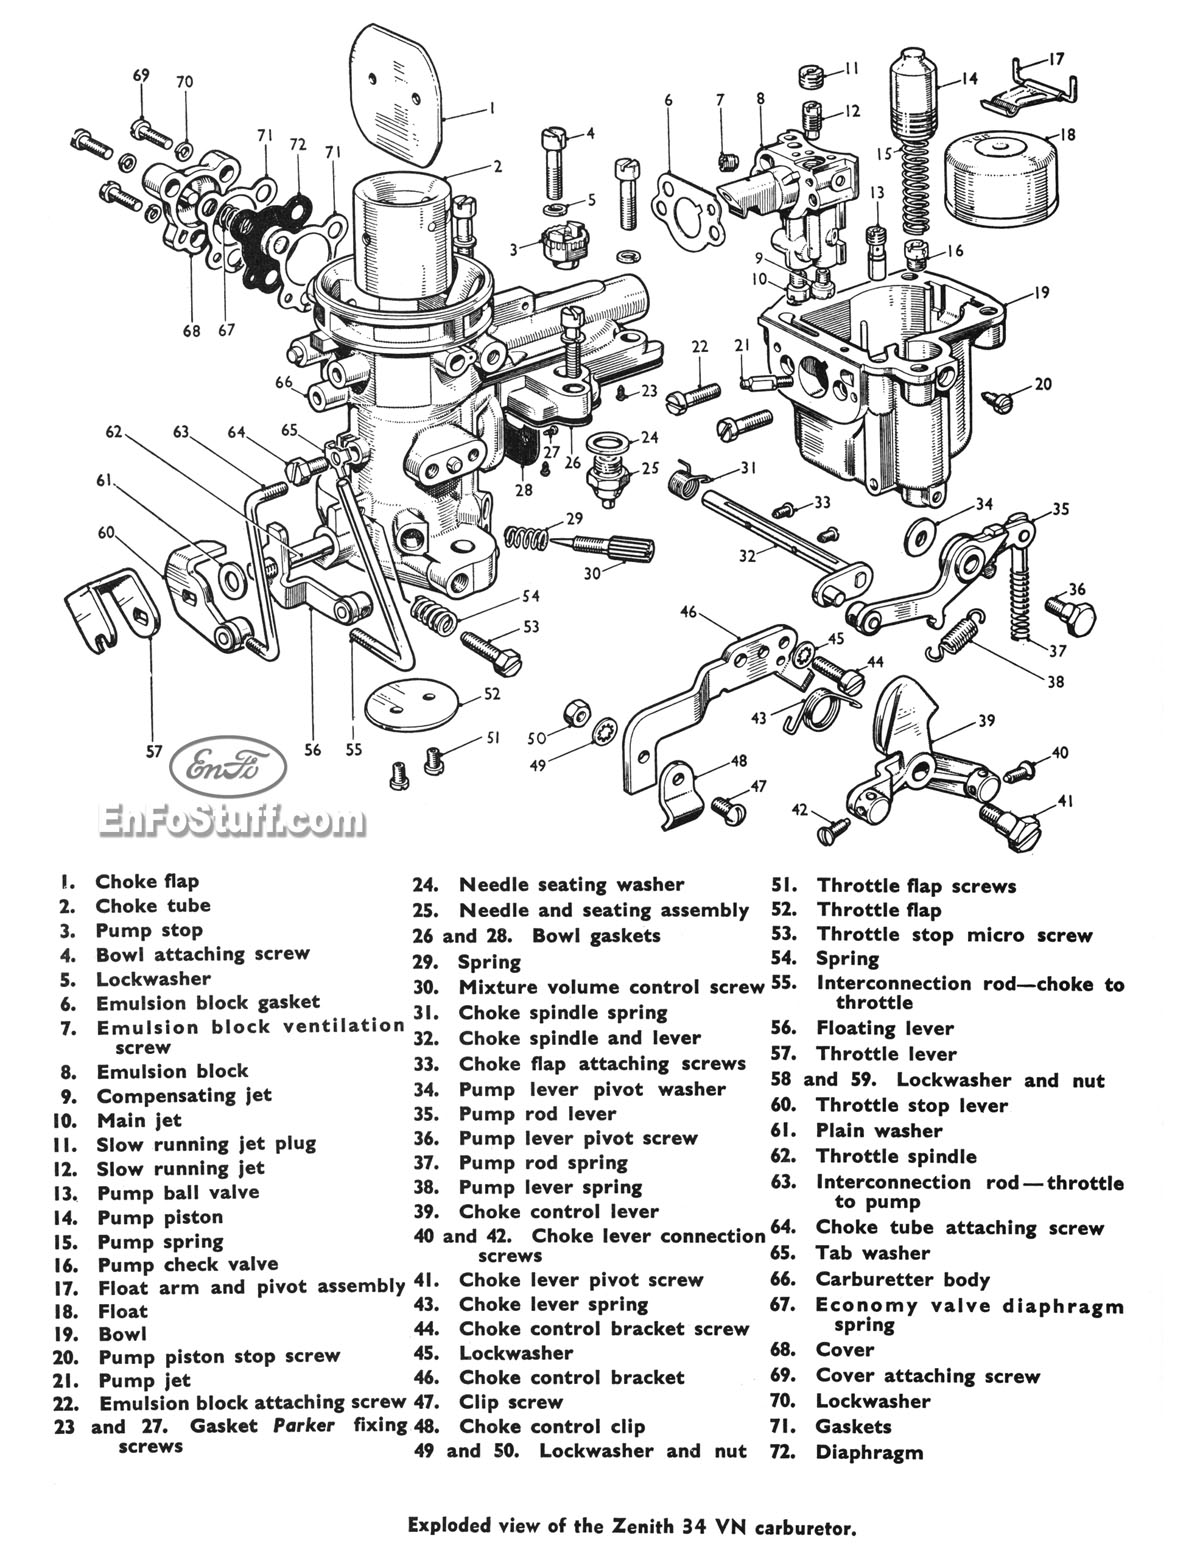 Zenith carburetors diagrams free download wiring diagrams schematics carburetor diagram zenith 34 vn consul mkii and consul 315 for zenith carb model 20 zenith ccuart Image collections